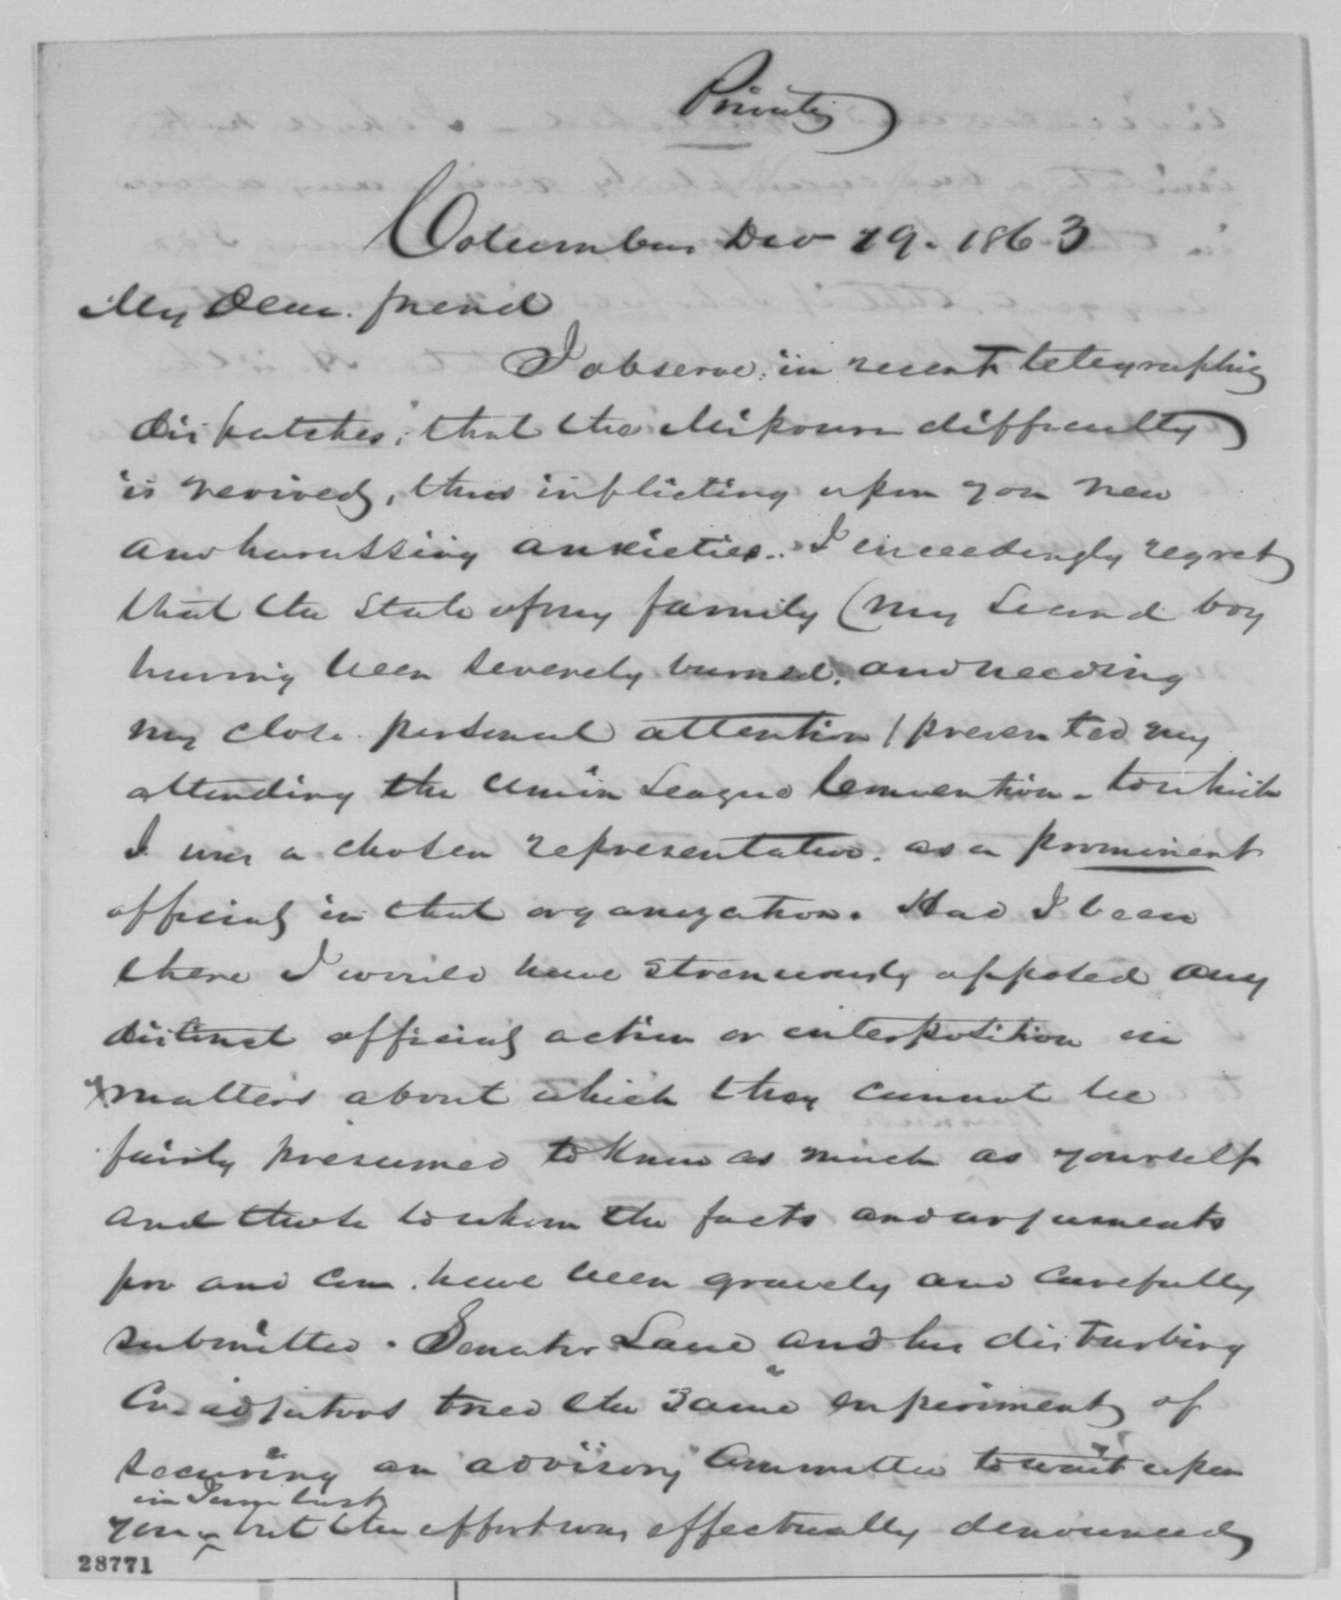 Samuel Galloway to Abraham Lincoln, Saturday, December 19, 1863  (Political affairs)